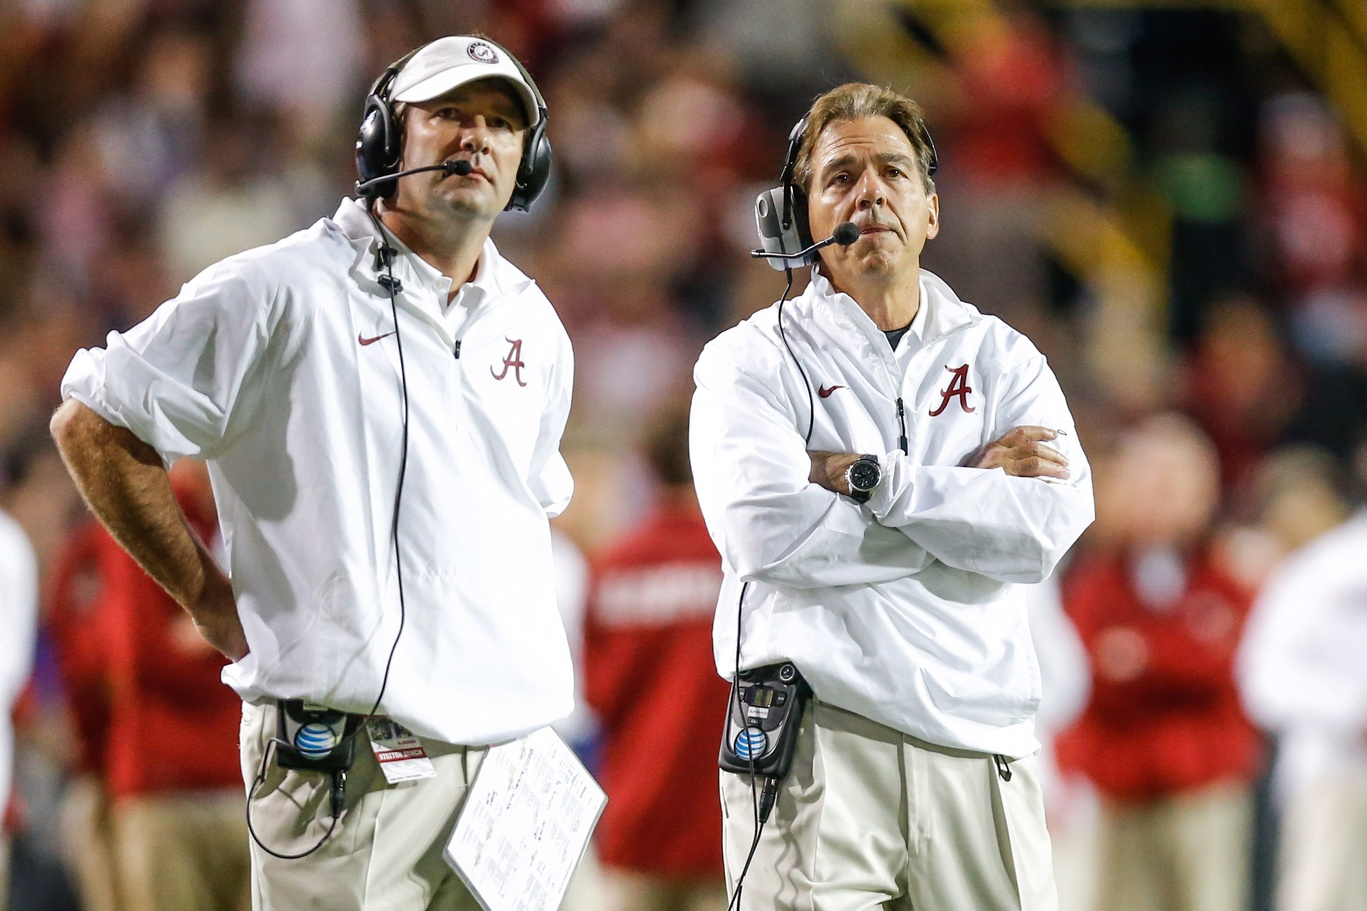 with all he s accomplished would nick saban consider retiring